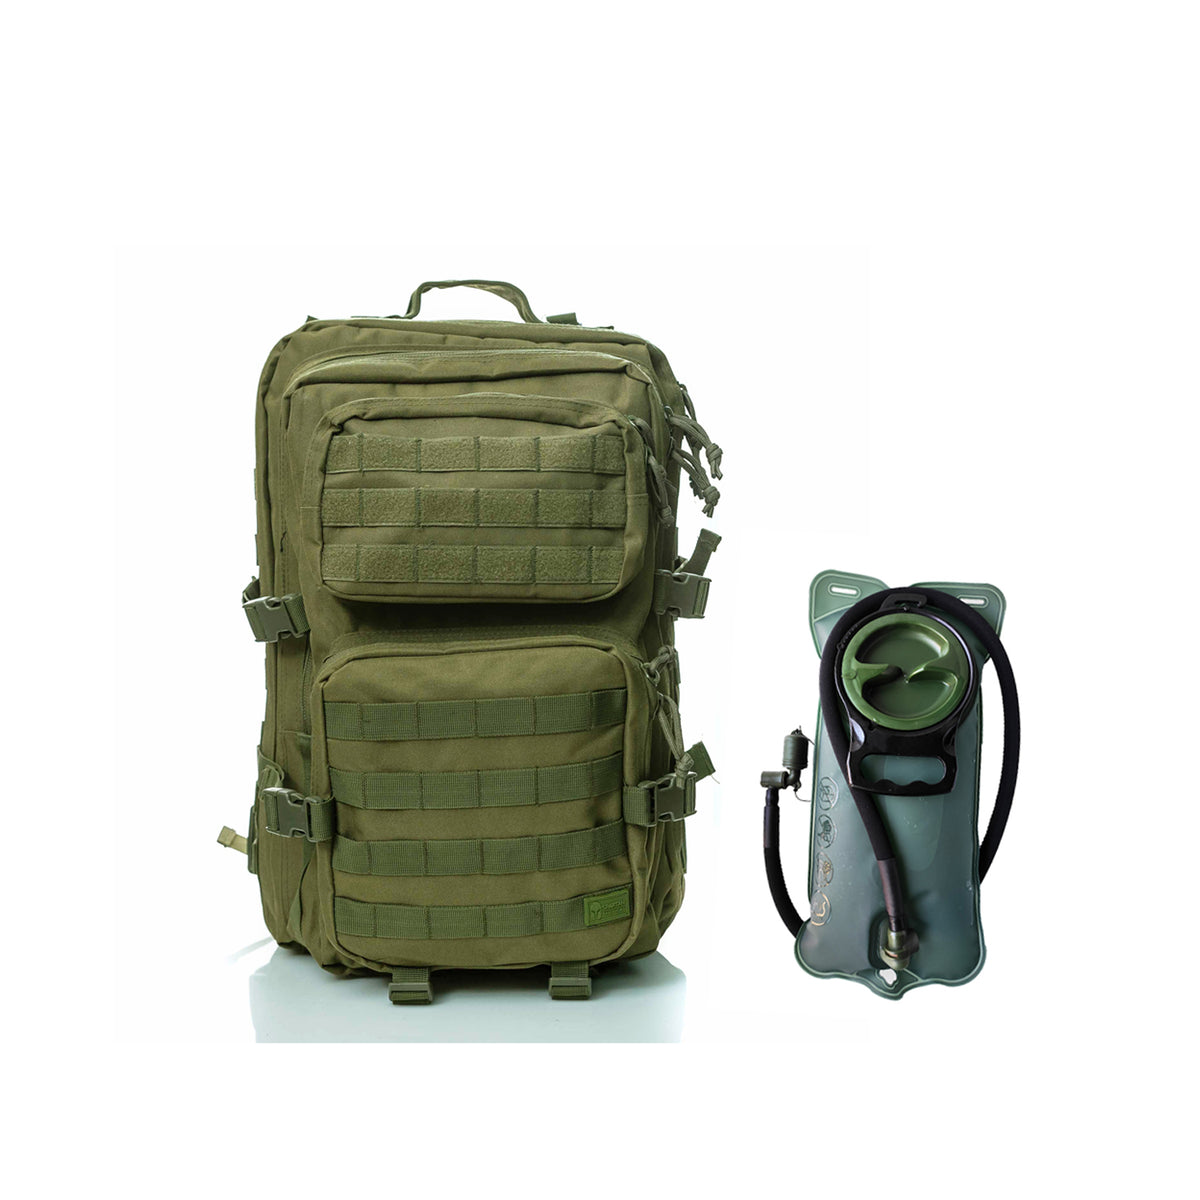 Spartan Tactical - Hydro Pack - Hippeas Backpack - Water bladder